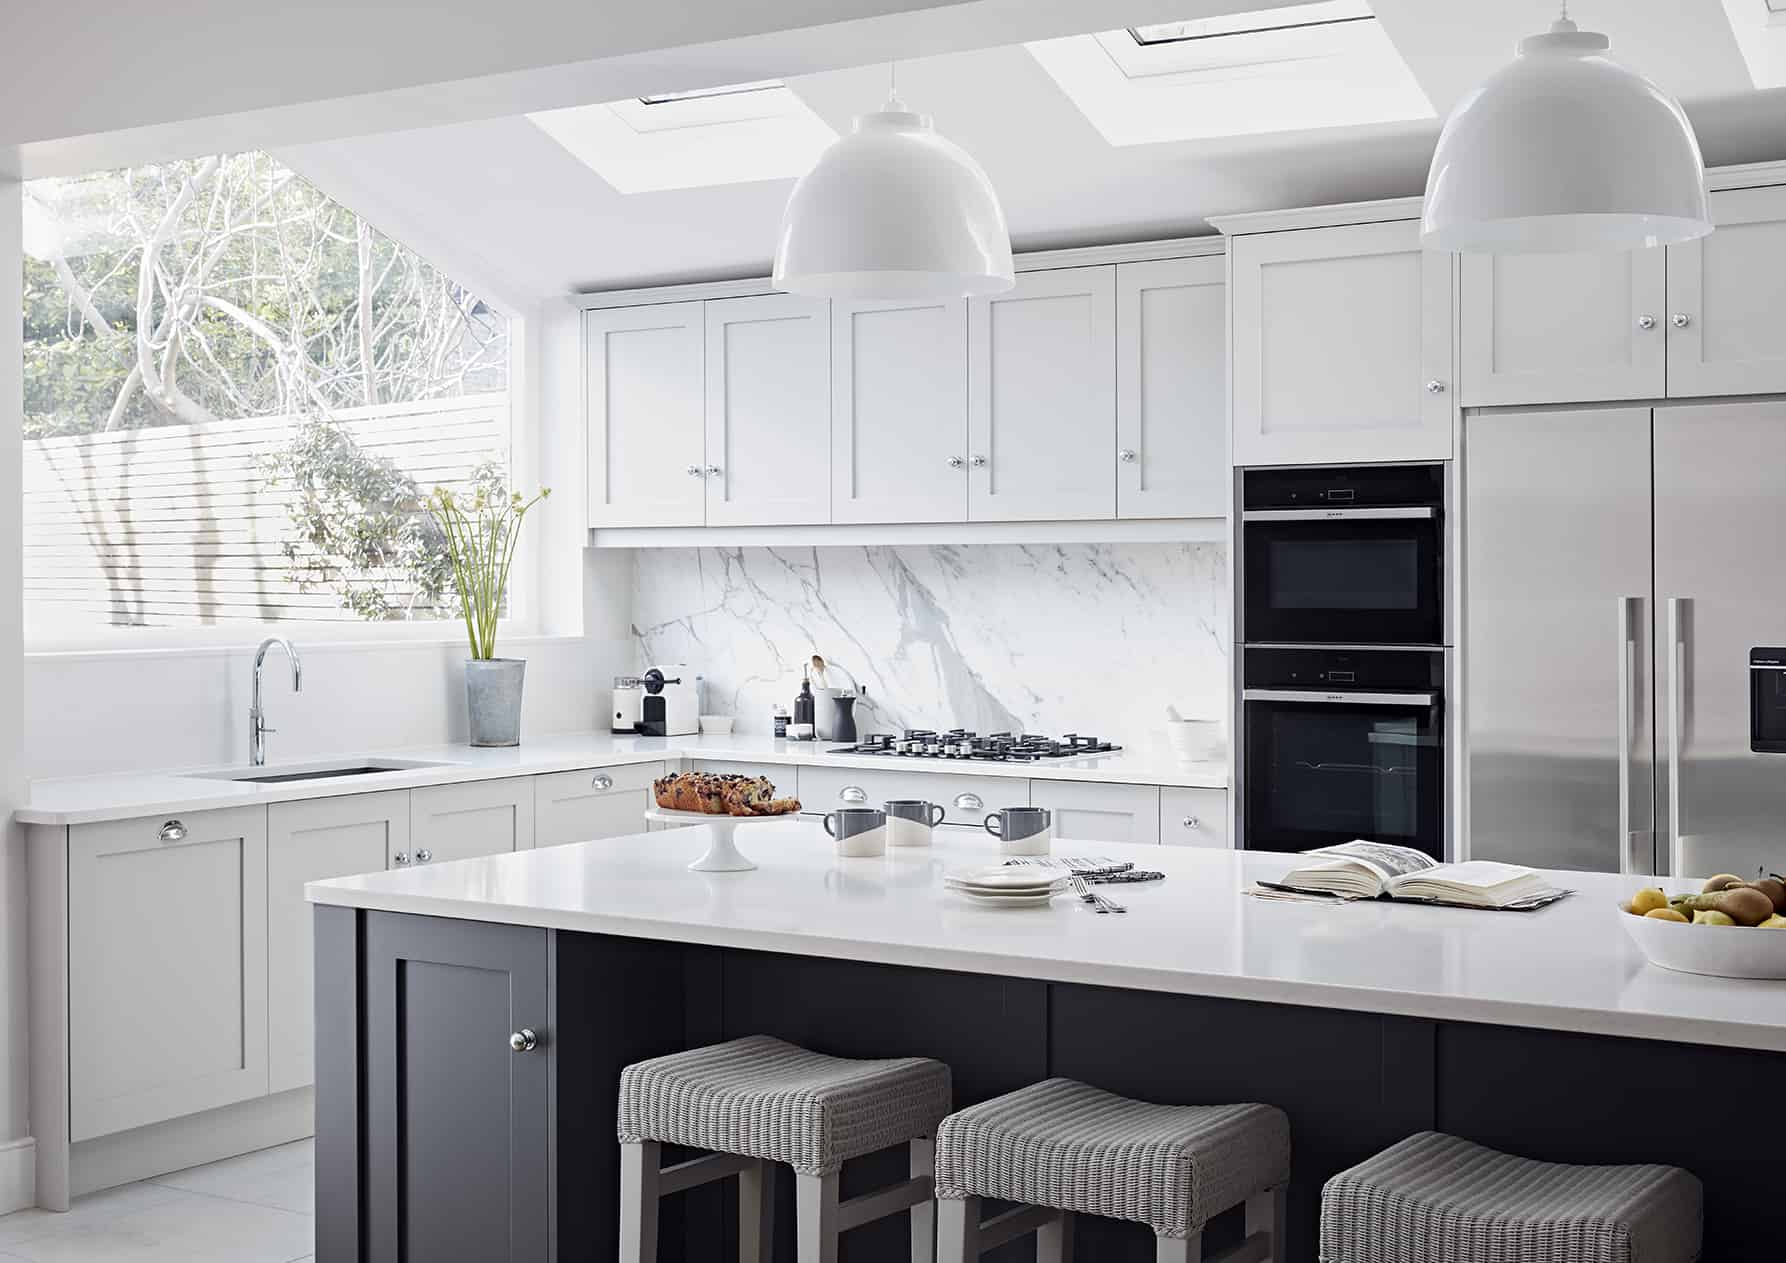 Black and white Shaker Kitchen John Lewis of Hungerford